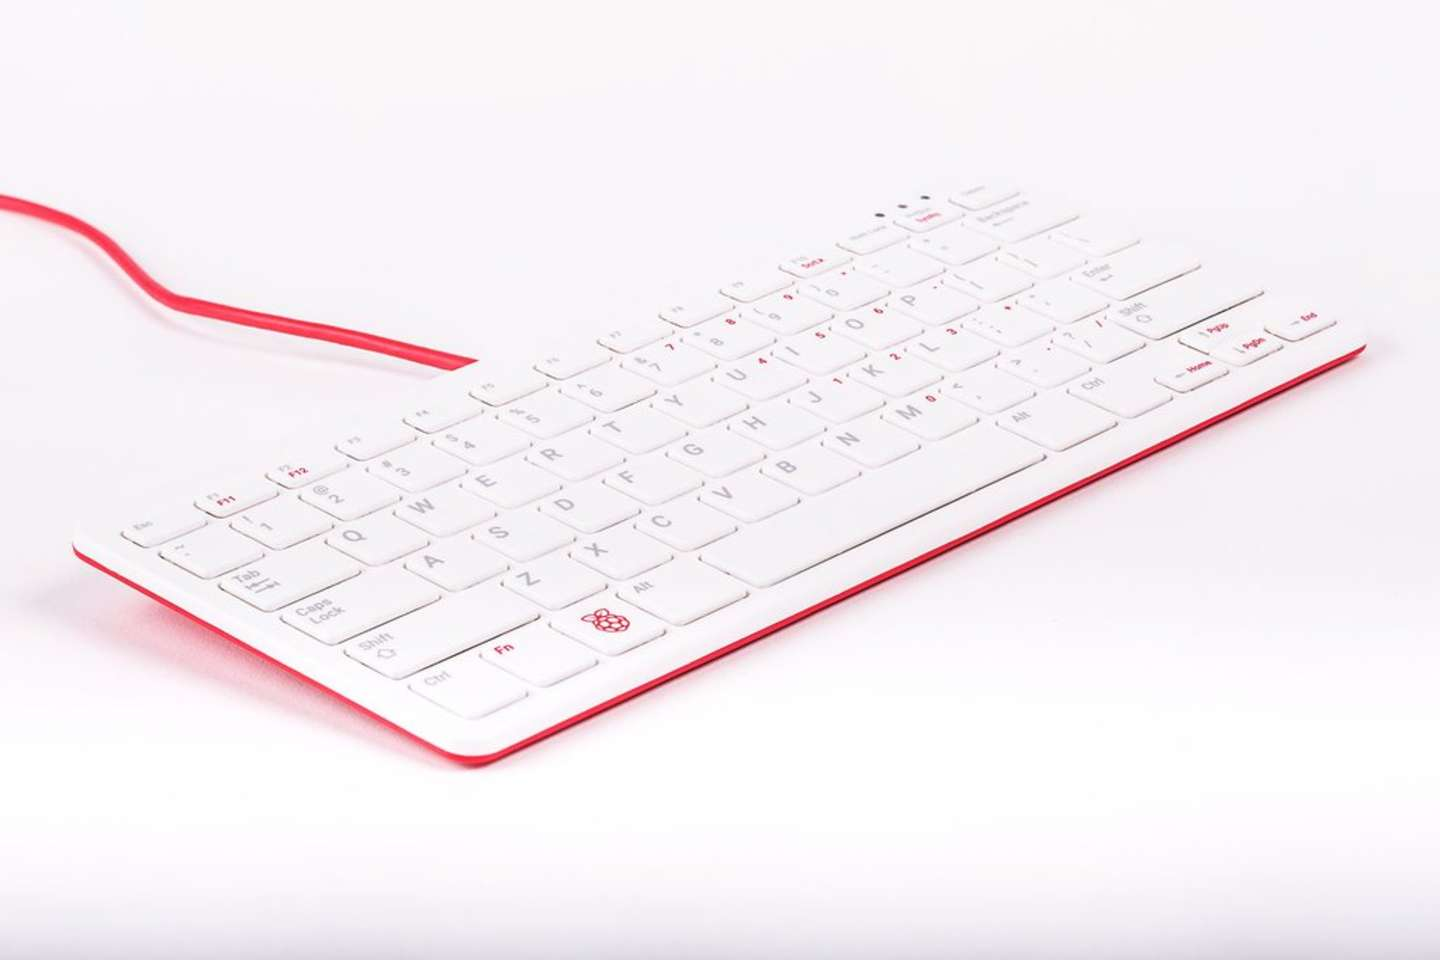 Official Raspberry Pi keyboard design